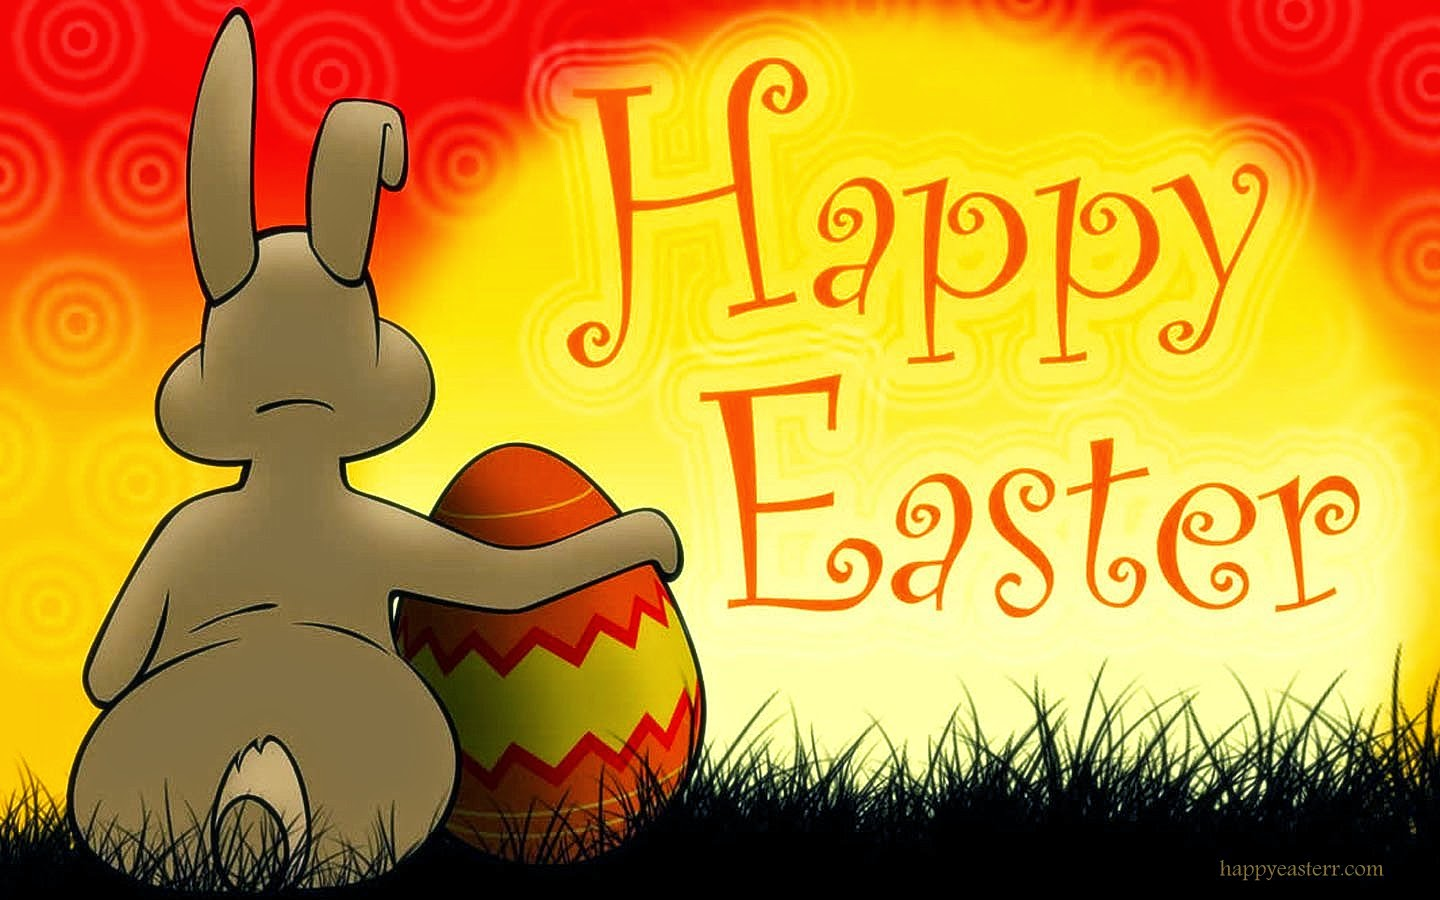 Happy Easter Holiday Wishes